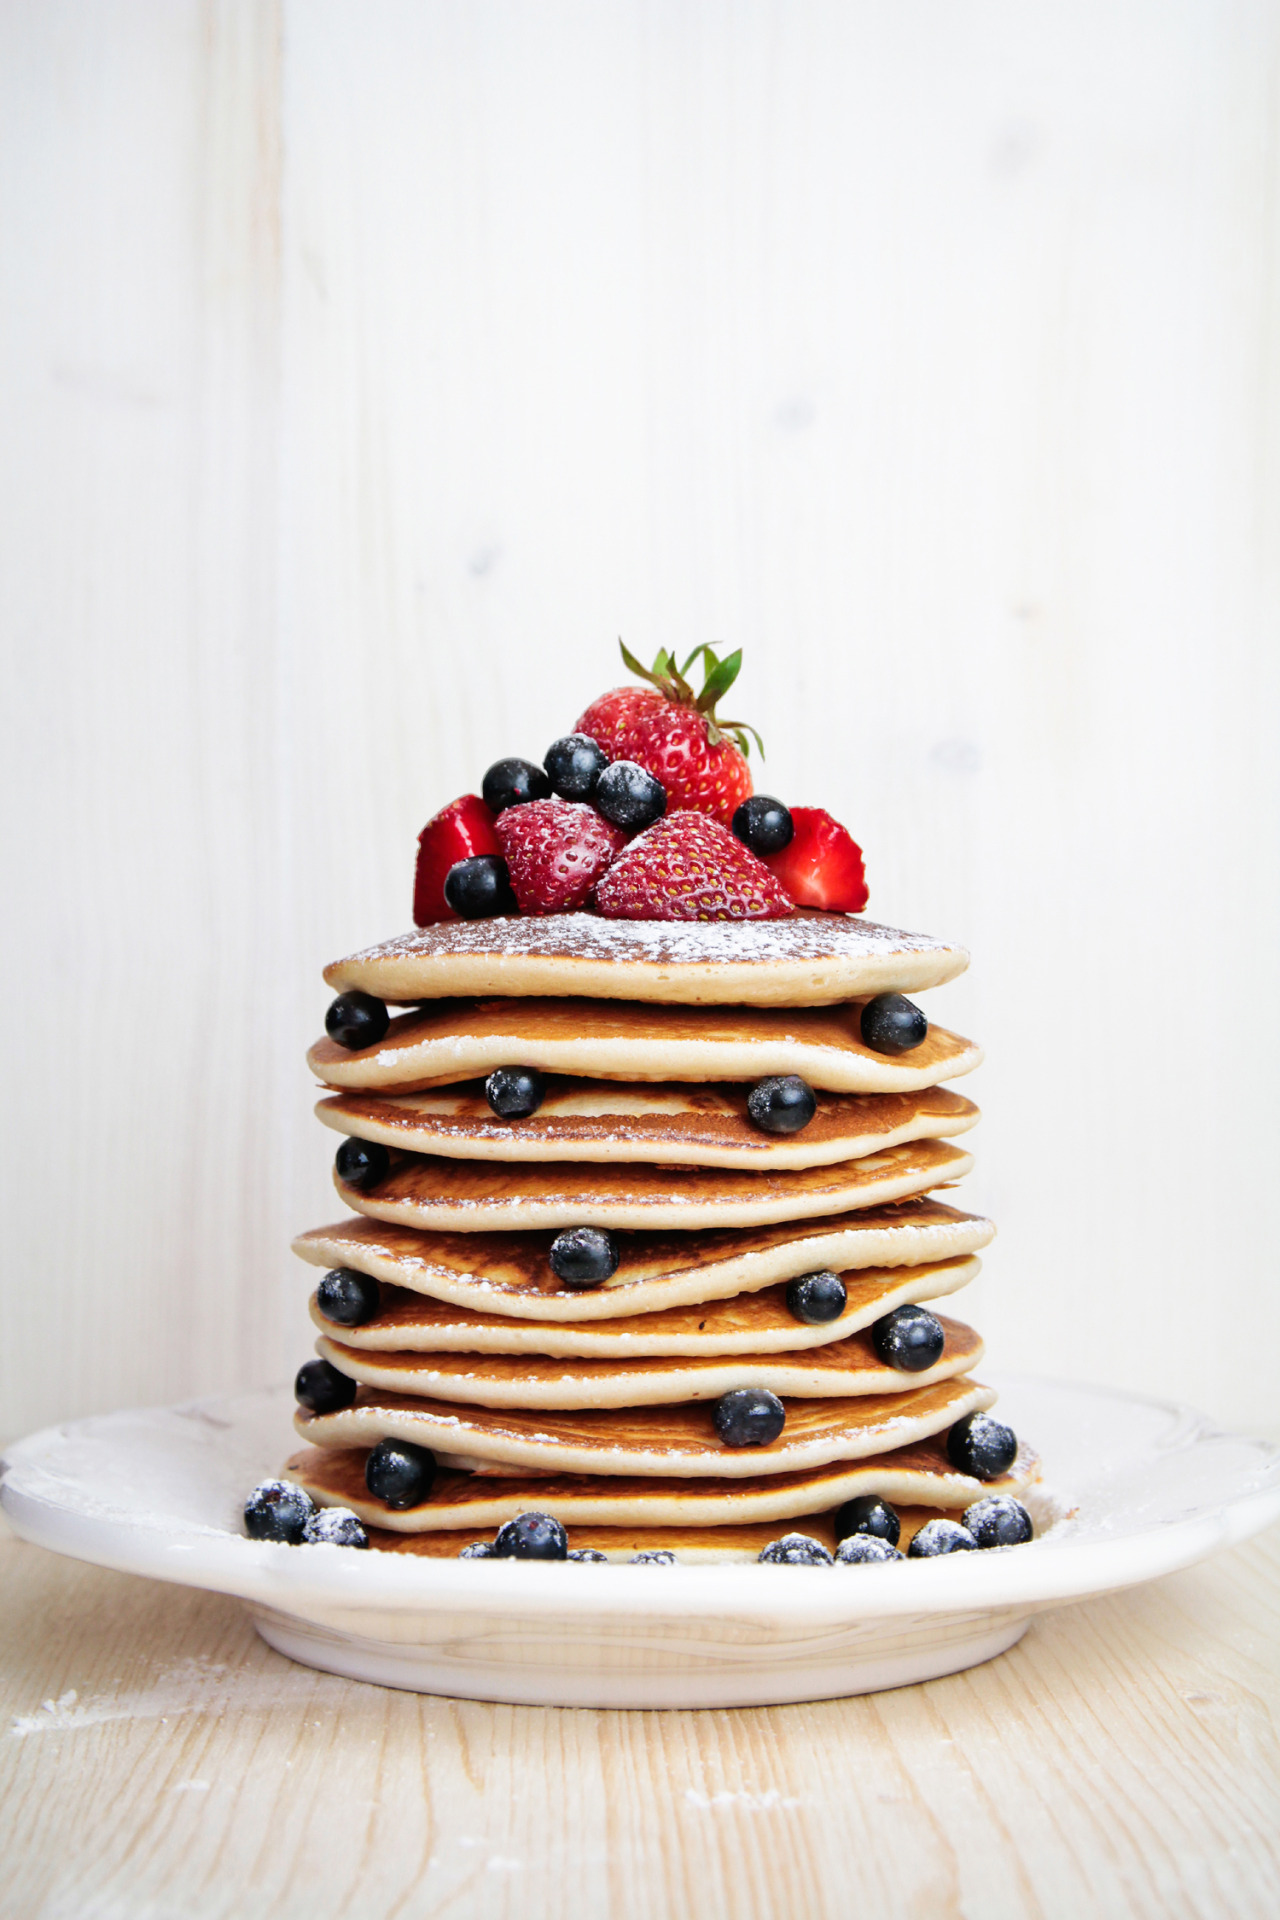 foodphoto strawberry pancakes tasty 1280x1920